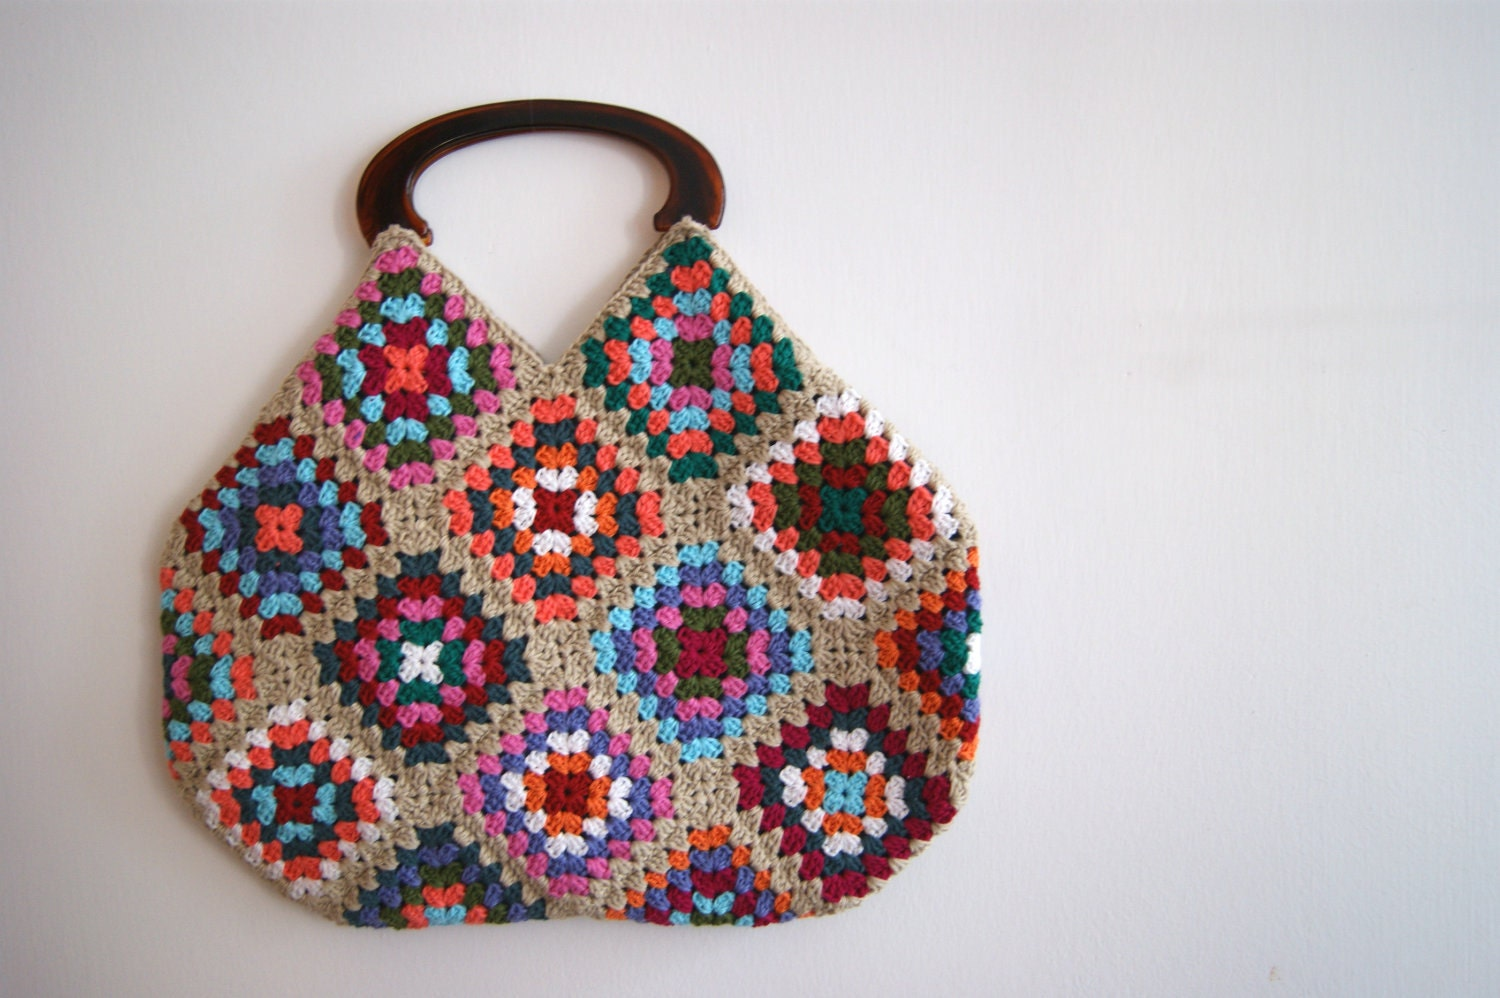 Granny Square Purse : Beige Crochet granny square bag by knittingcate on Etsy